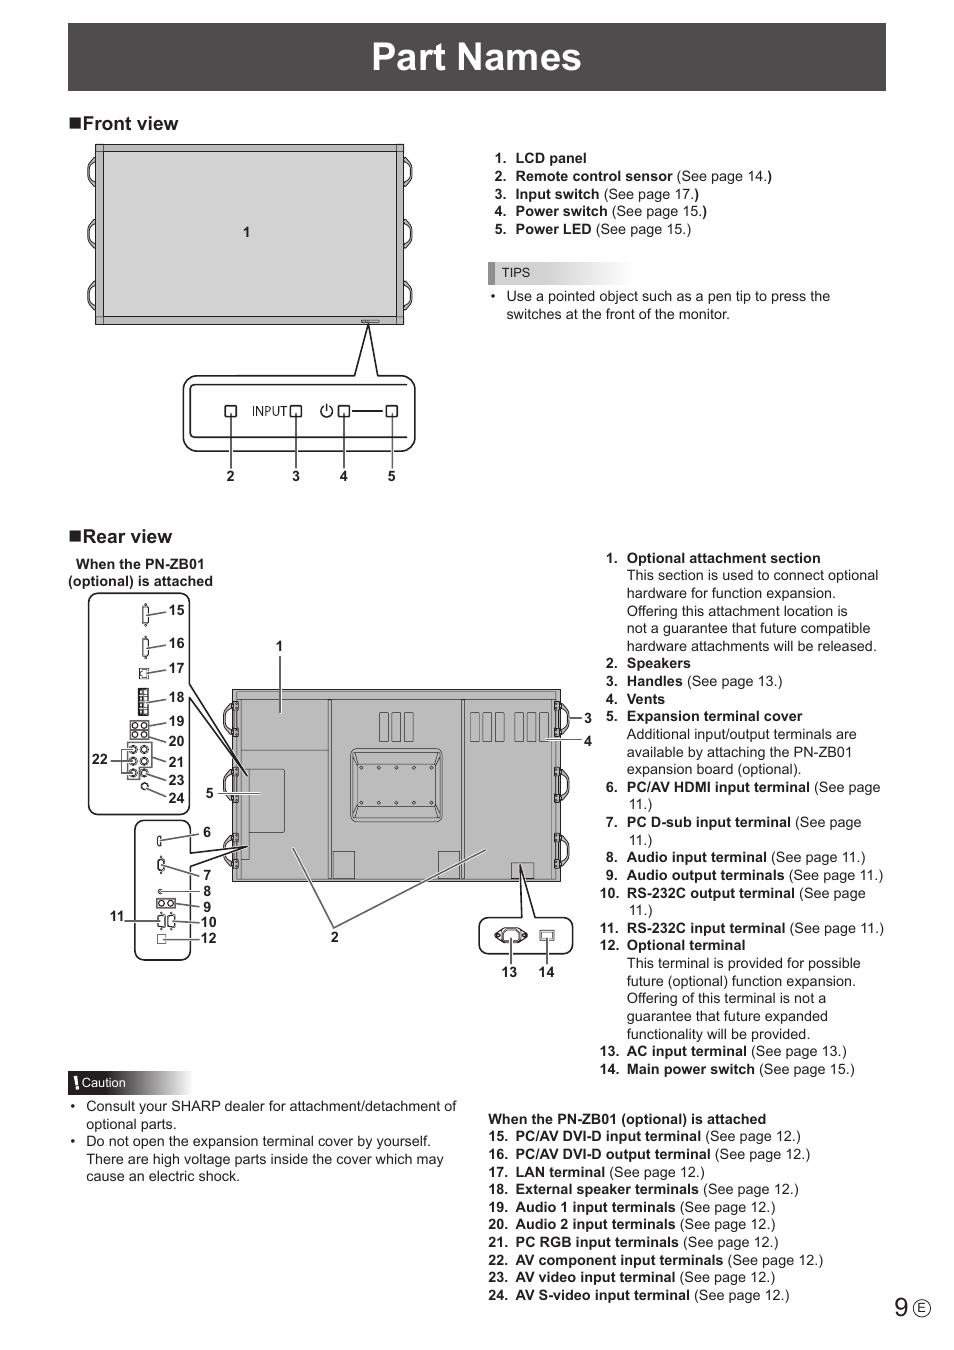 Part names, Nfront view, Nrear view | Sharp PN-E802 User Manual | Page 9 / 56